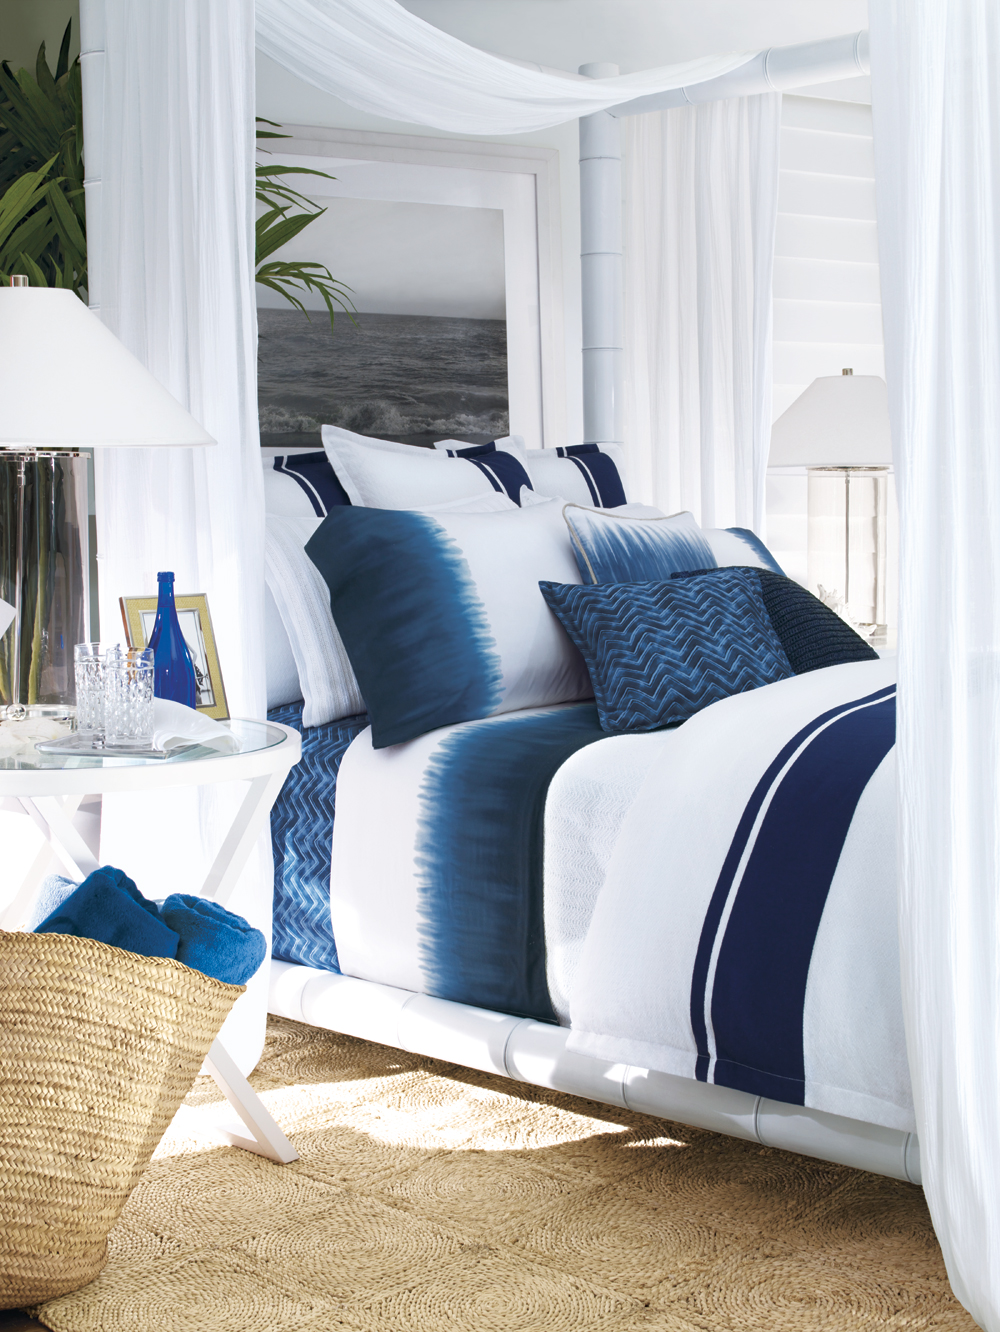 Ralph-Lauren-Indigo-bedding - Splendid Habitat - Interior design and ...